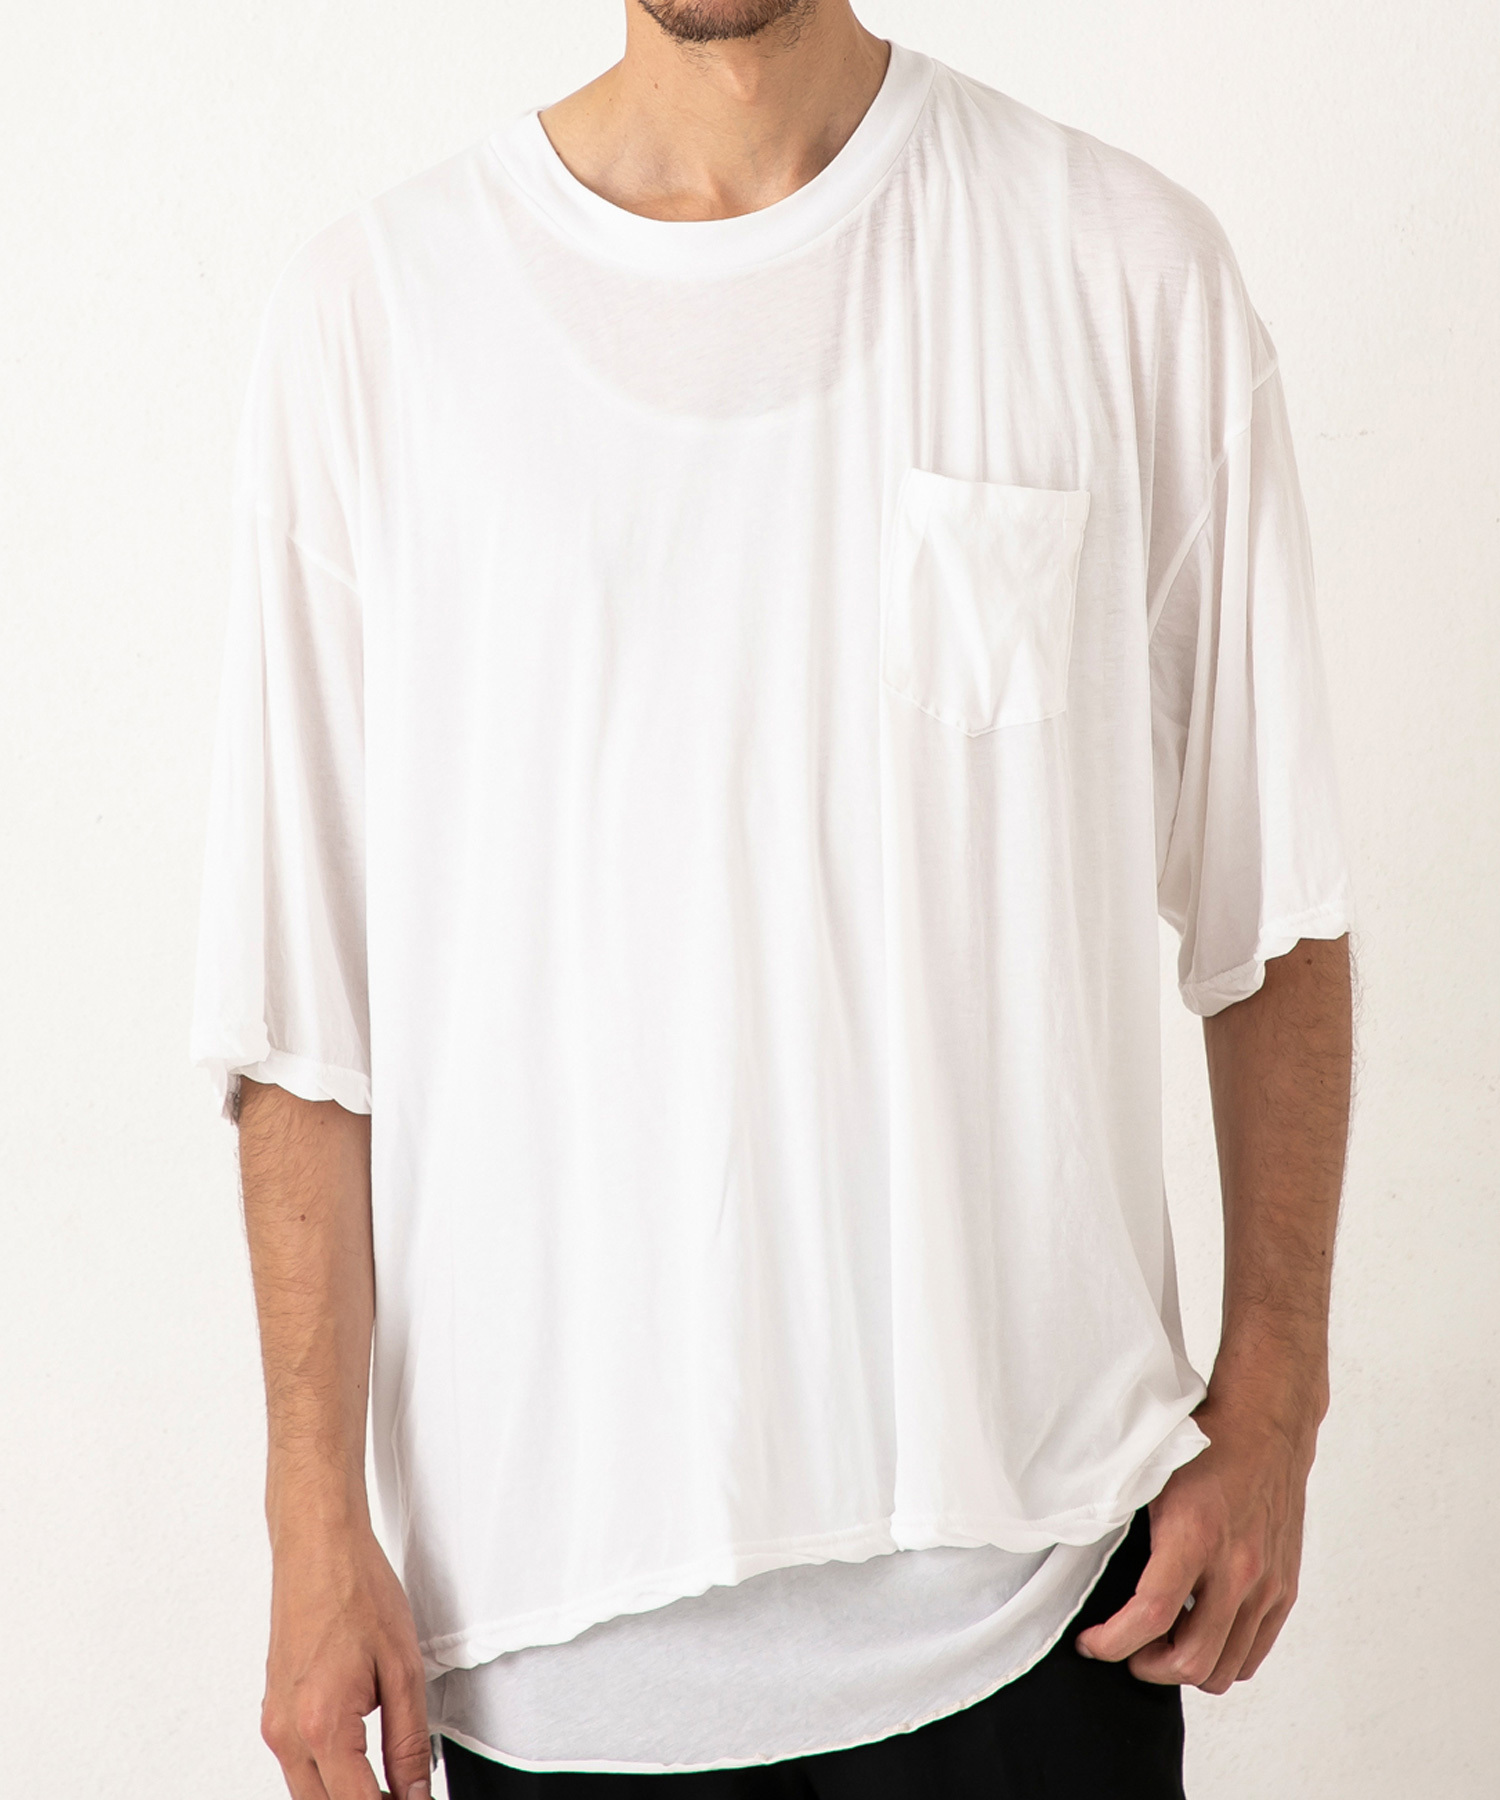 50%OFF【P.E.O.T.W AG】PKT 5 SLEEVE TEE / OFF